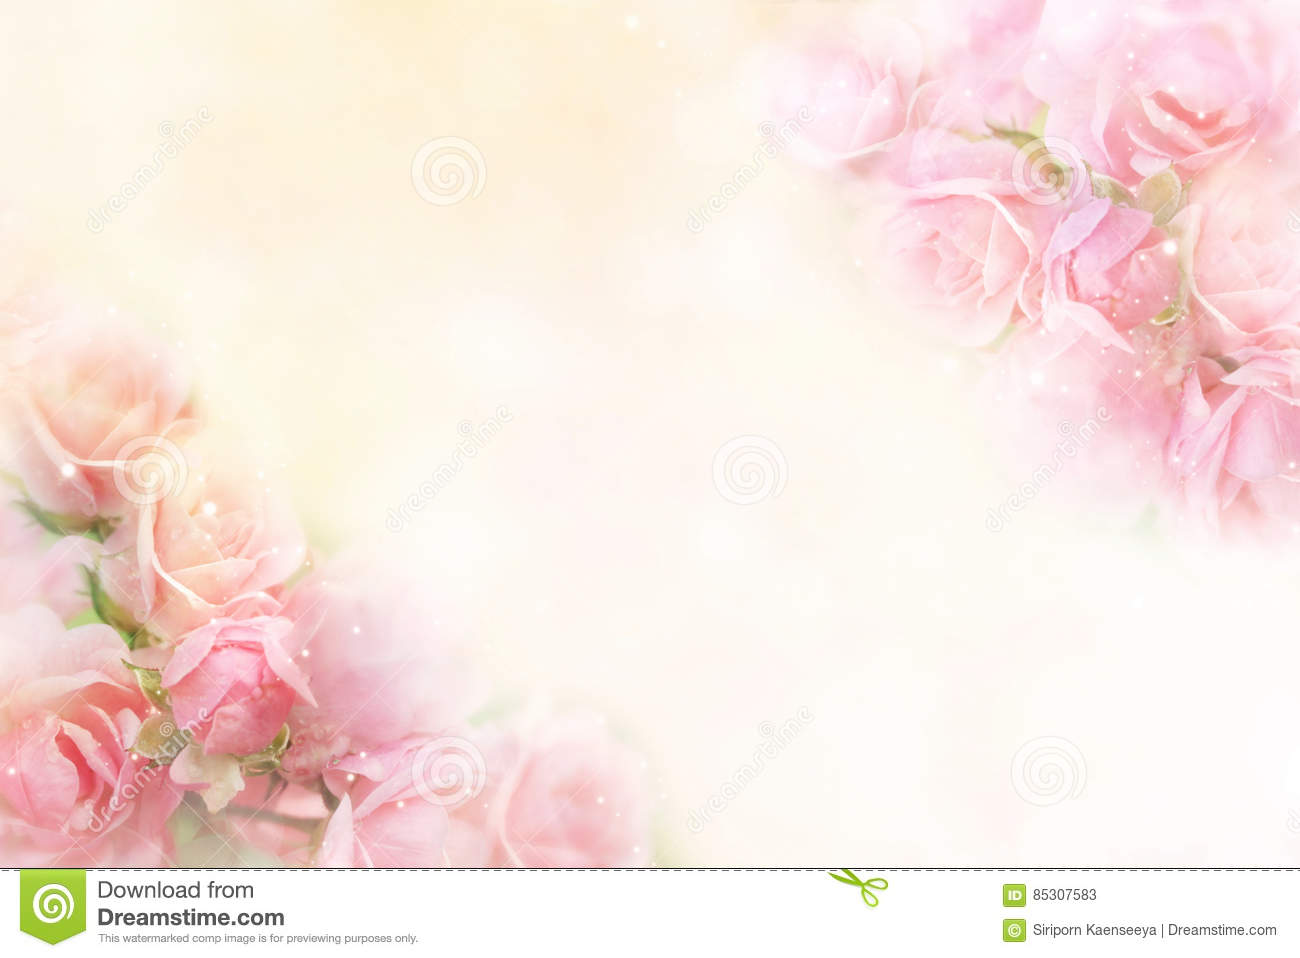 Download Pink Roses Flower Border Soft Background For Valentine Stock Image - Image of pastel, roses: 85307583